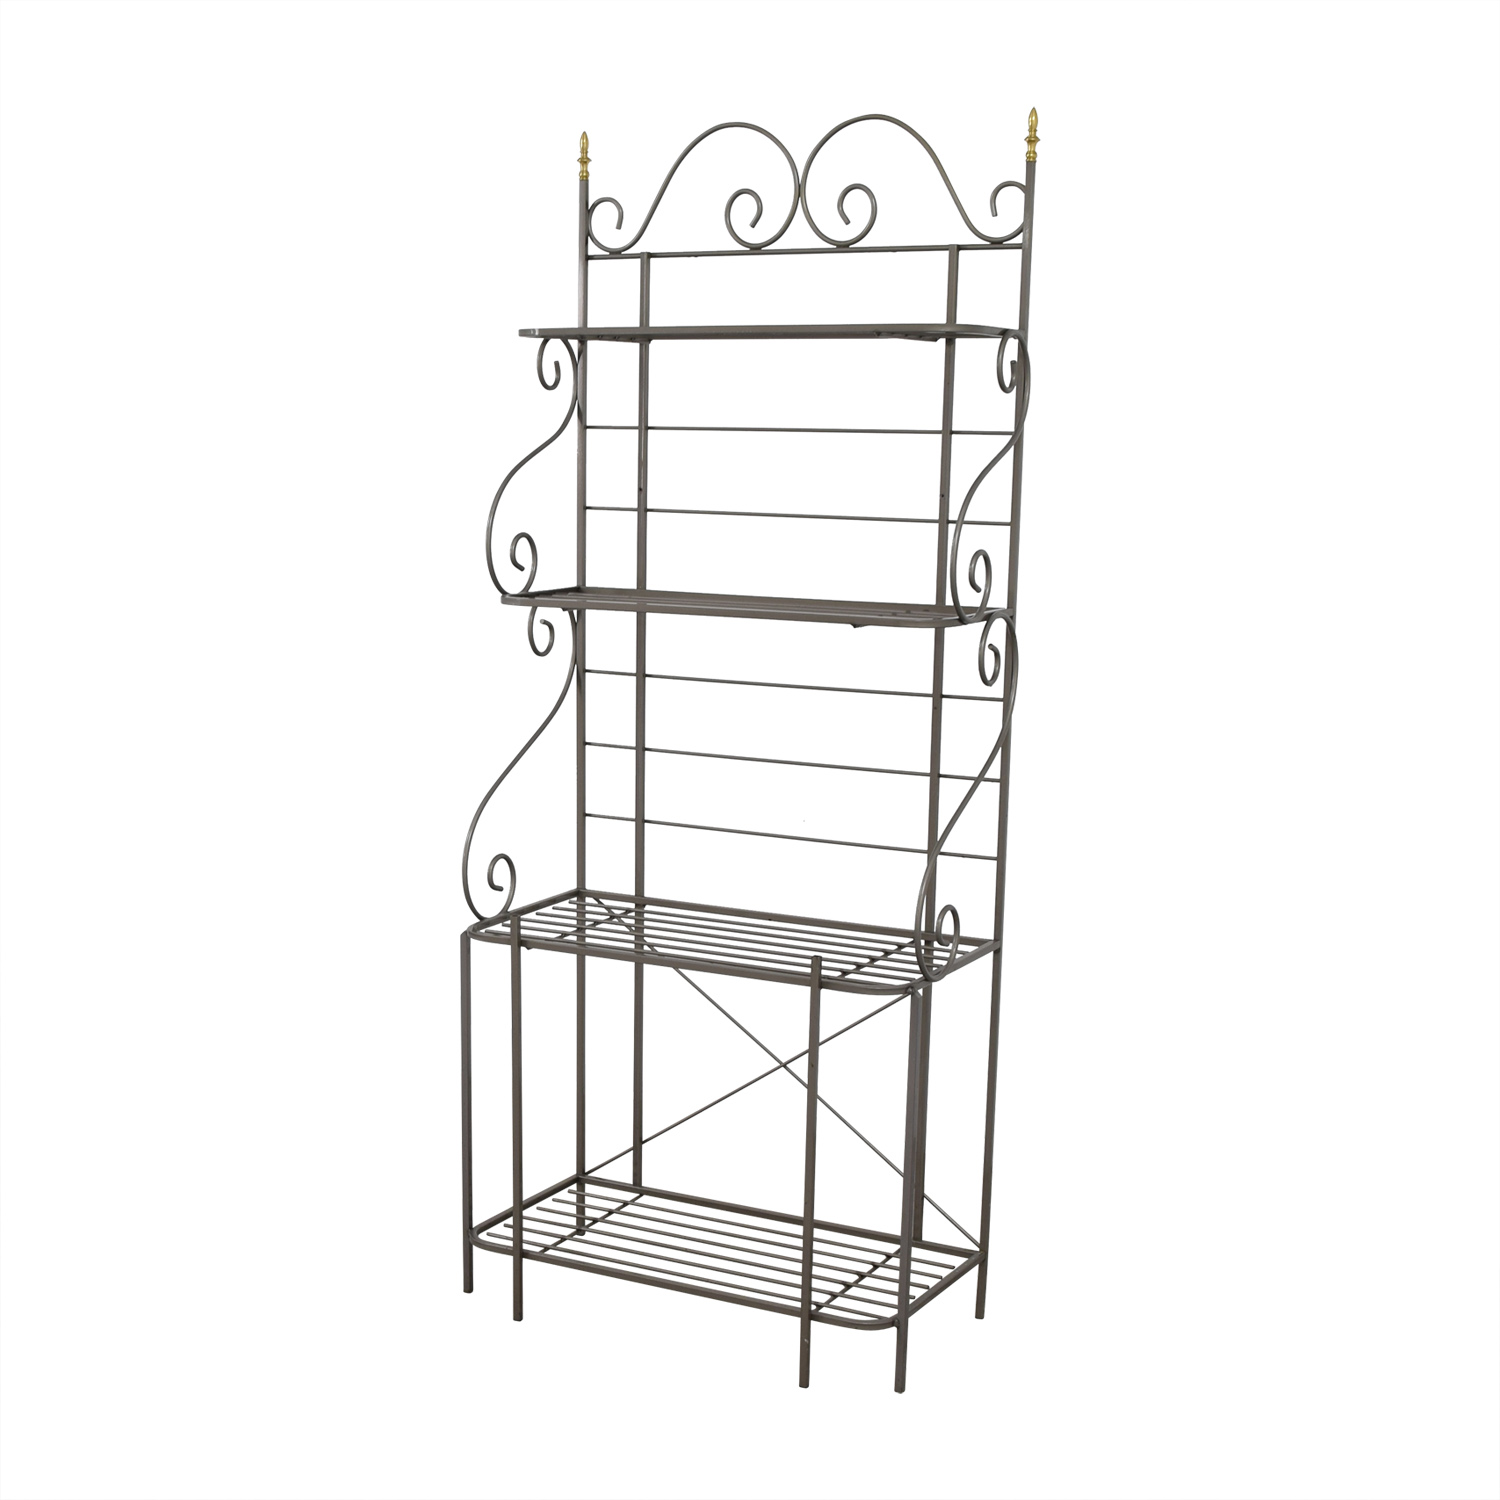 Foremost Furniture Foremost Furniture Grey Metal Bakers Rack Price